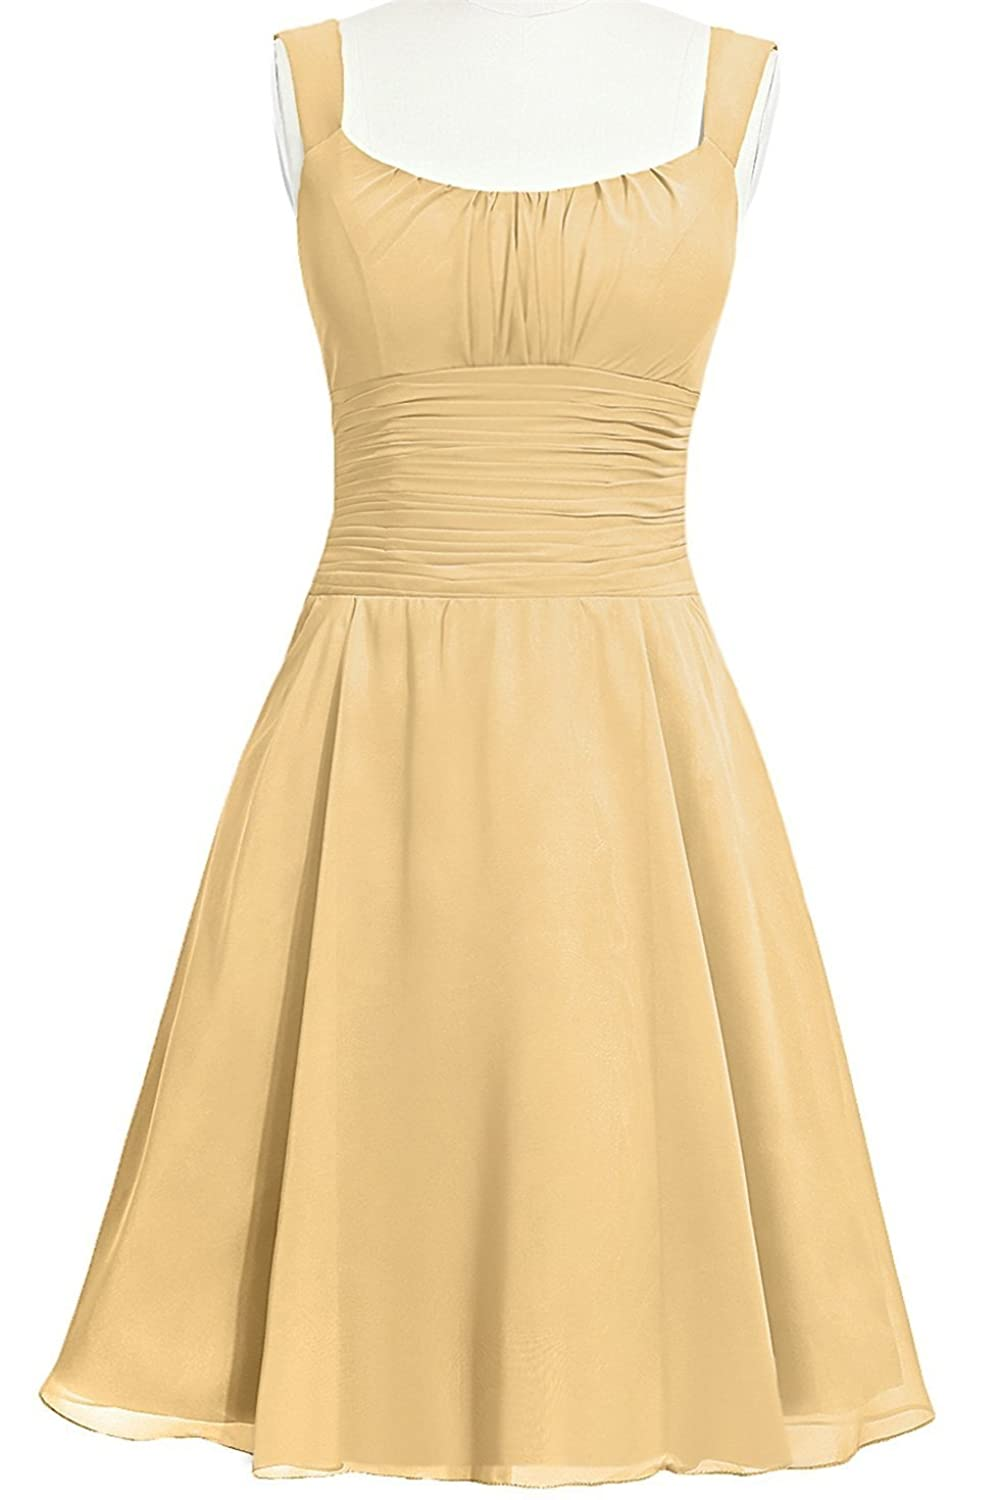 MittyDressesWomens Evening Homecoming Prom Party Cocktail Dress Size 24W US Gold